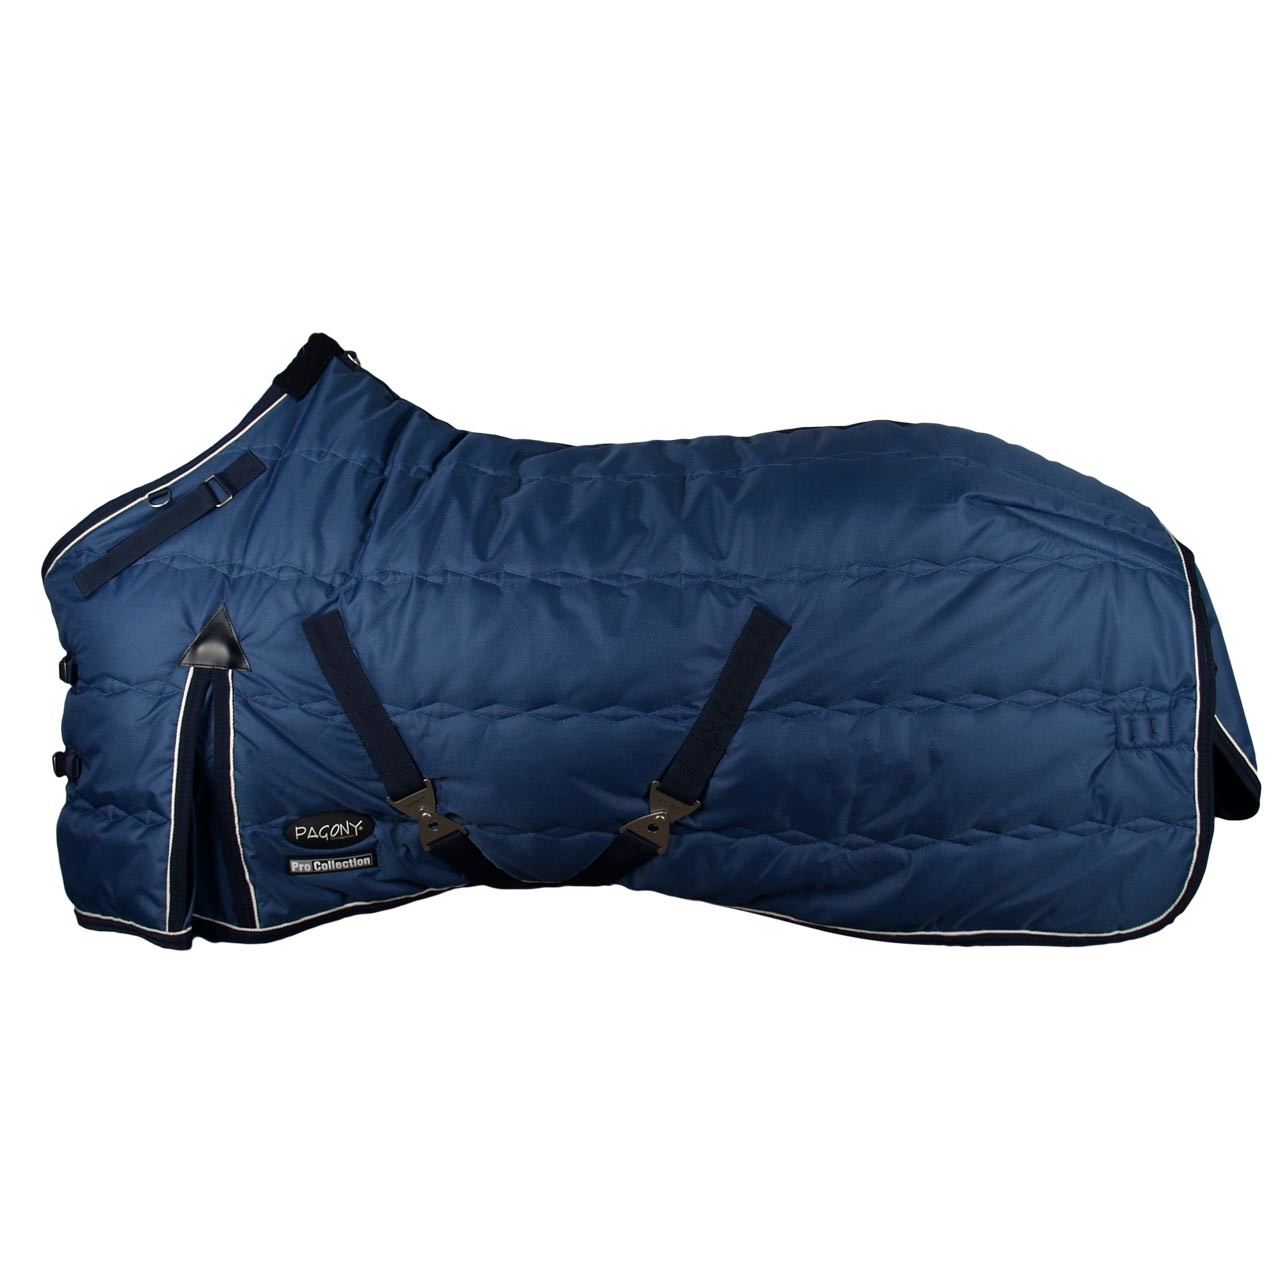 Pagony Pro stable blauw maat:165